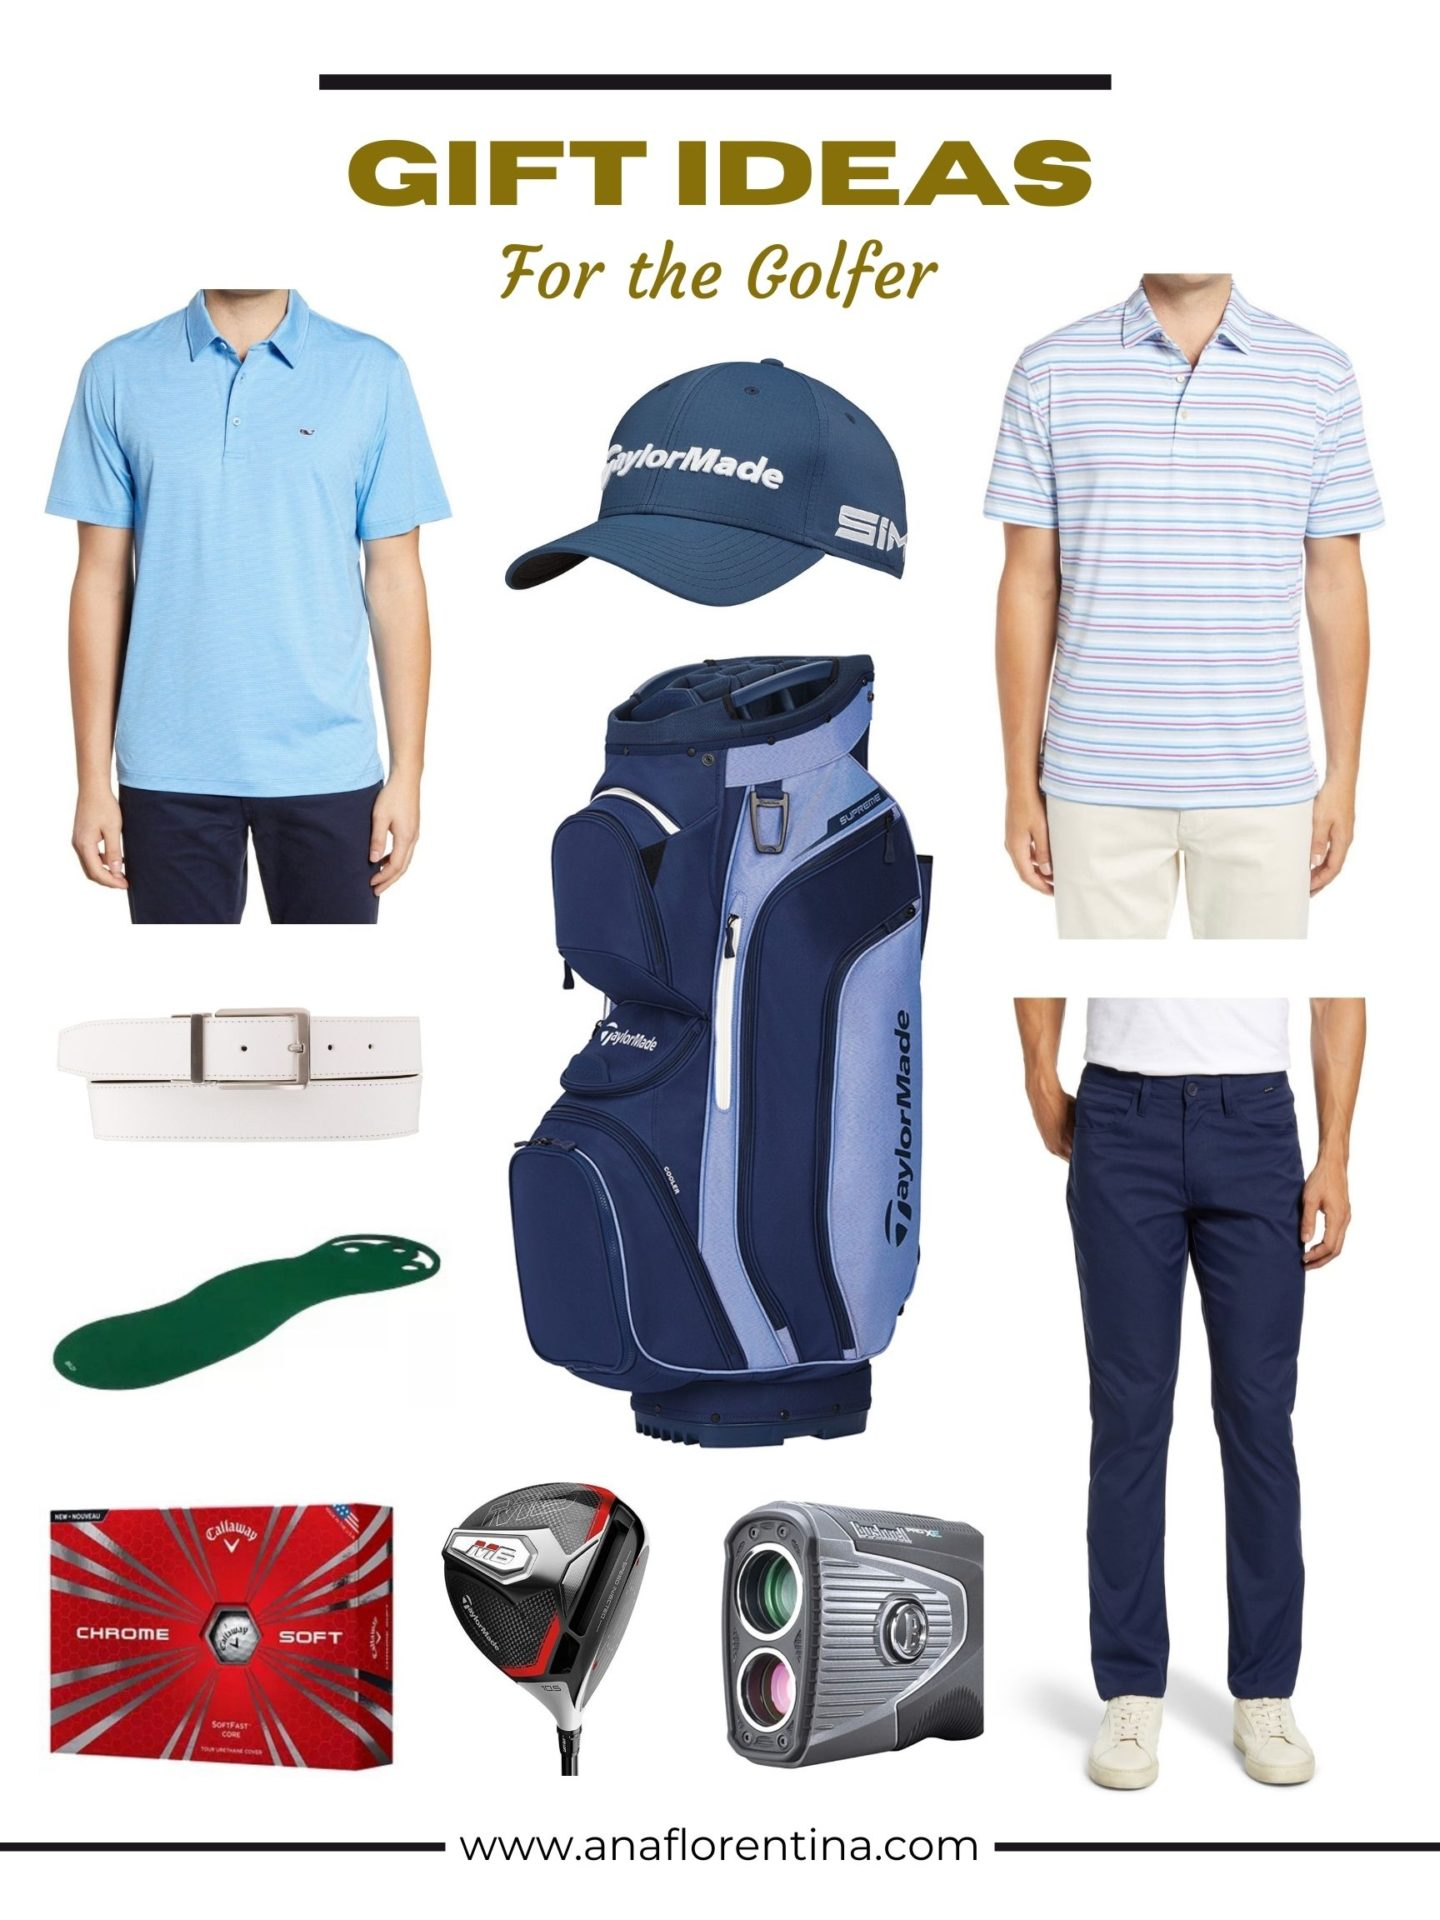 GIFT IDEAS GOLFER